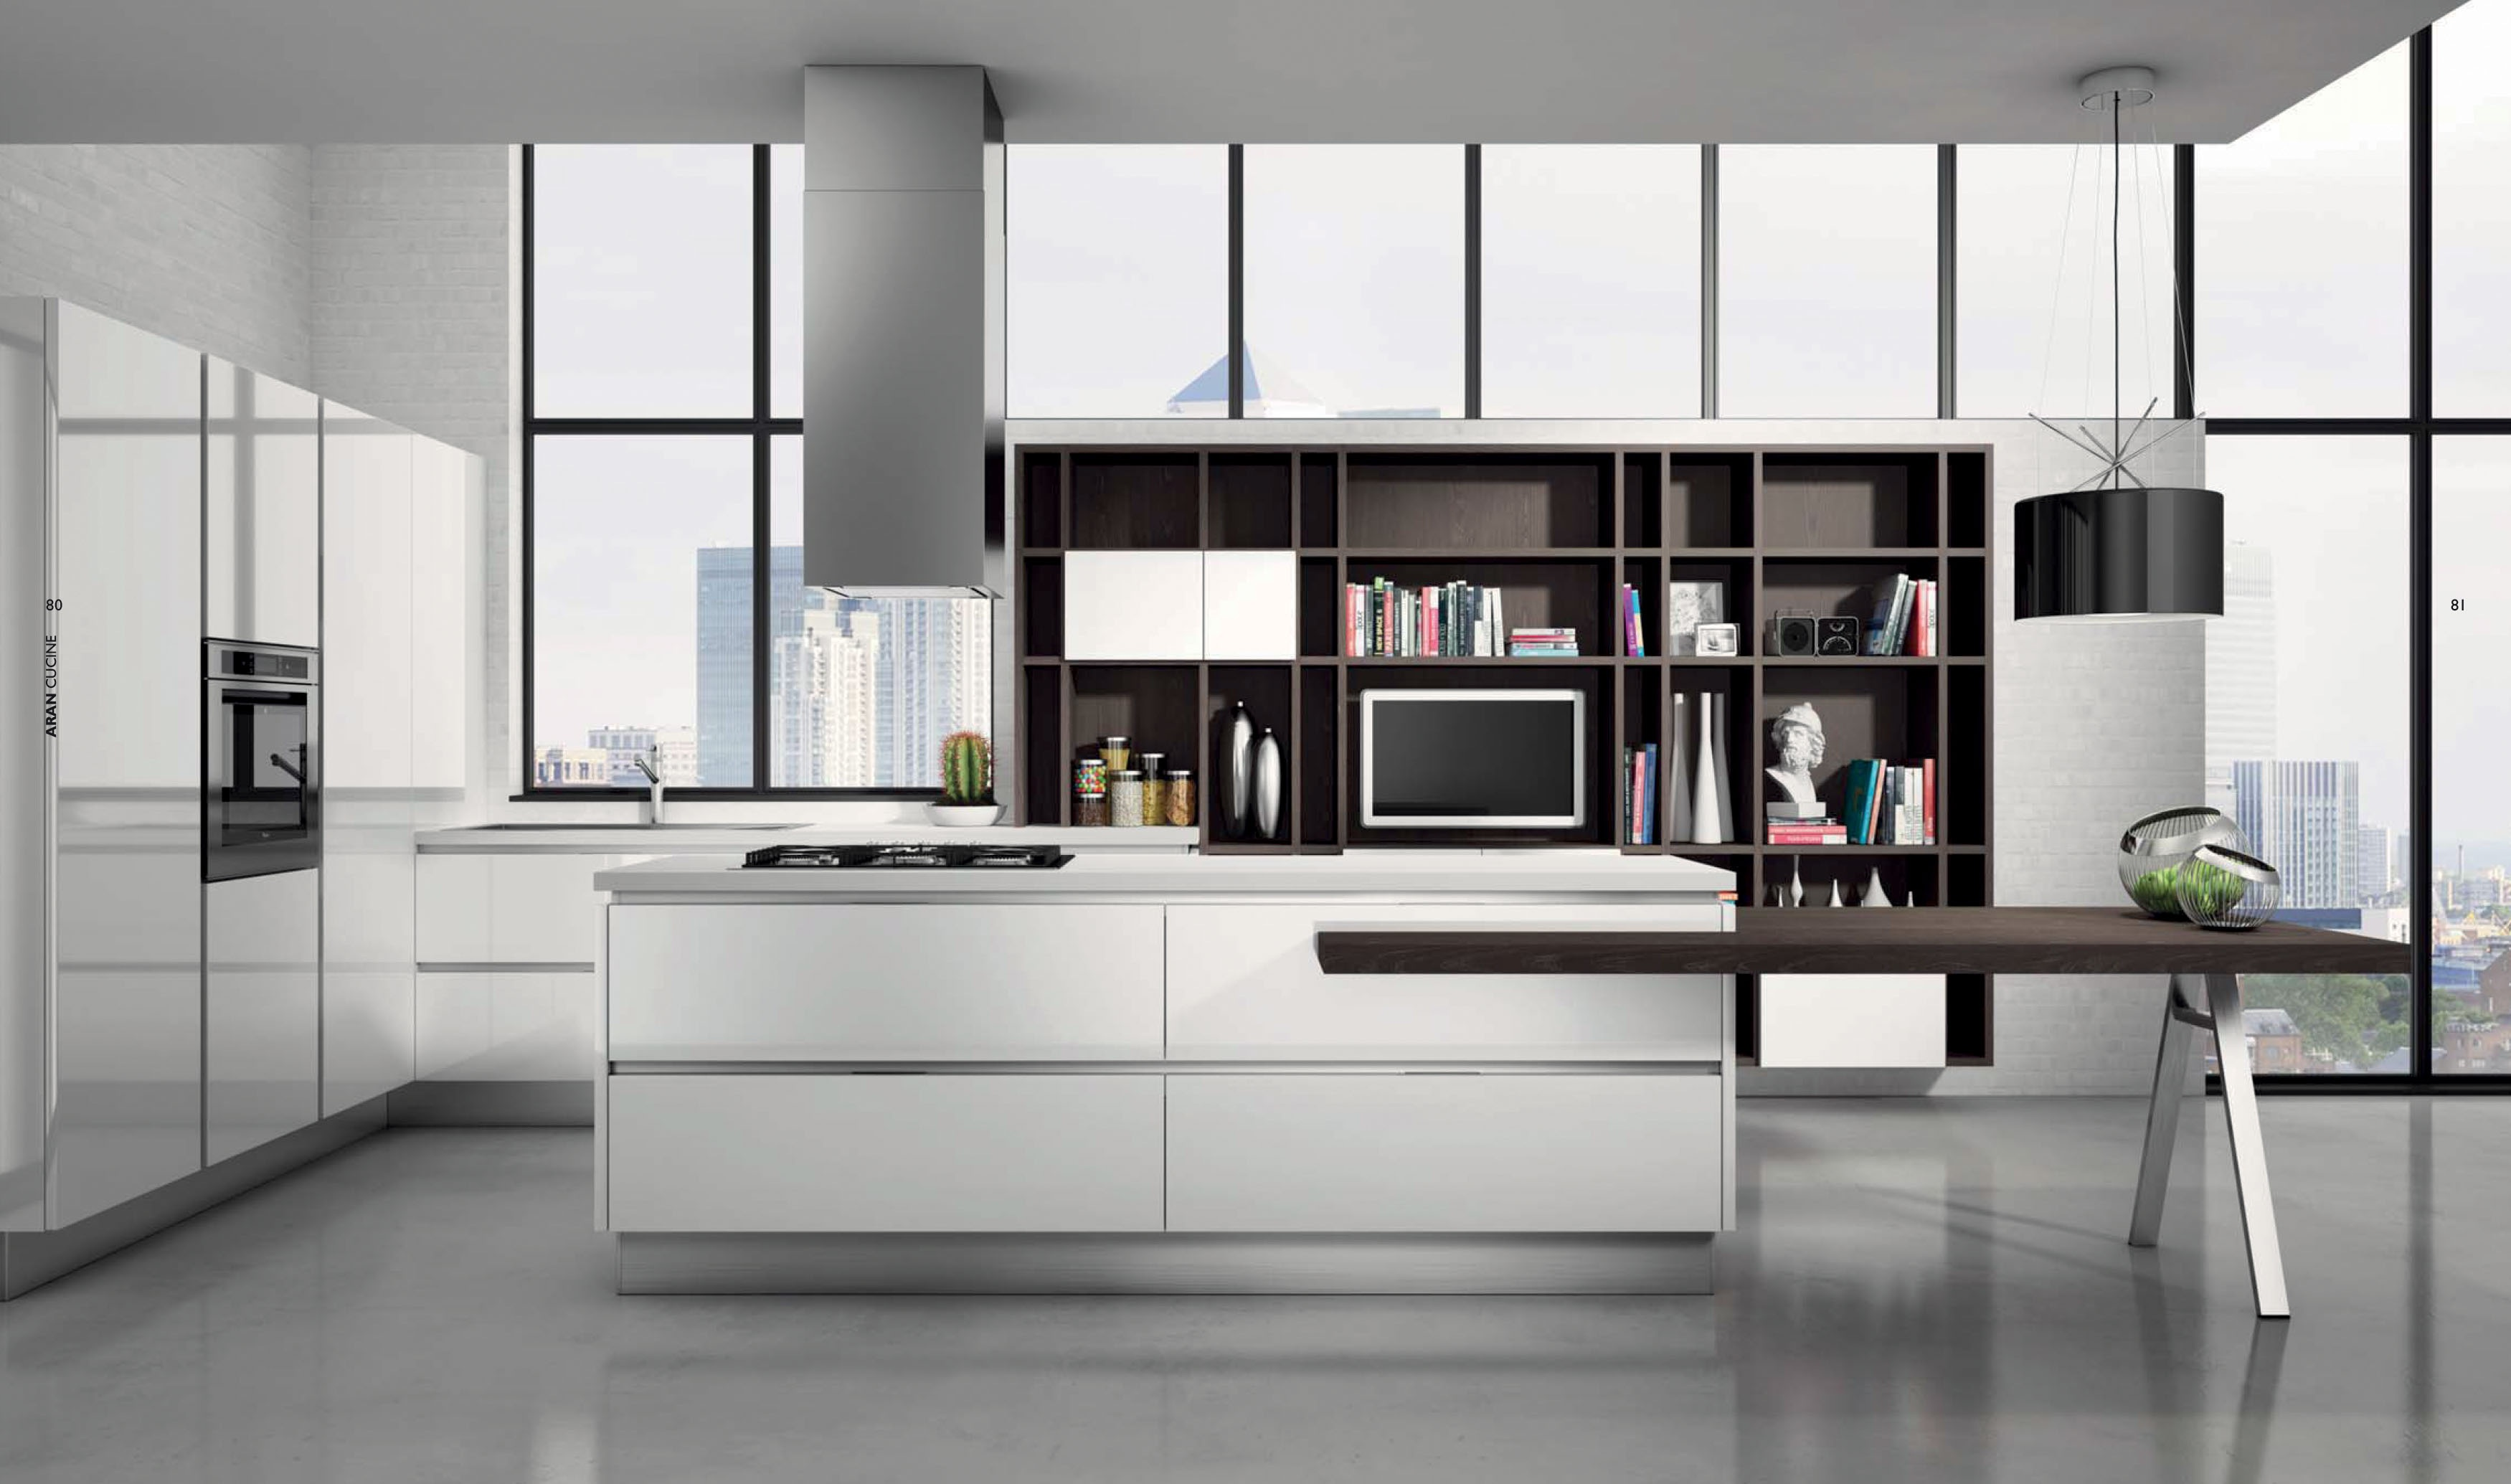 aran cucine in esclusiva le anteprime di eurocucina. Black Bedroom Furniture Sets. Home Design Ideas